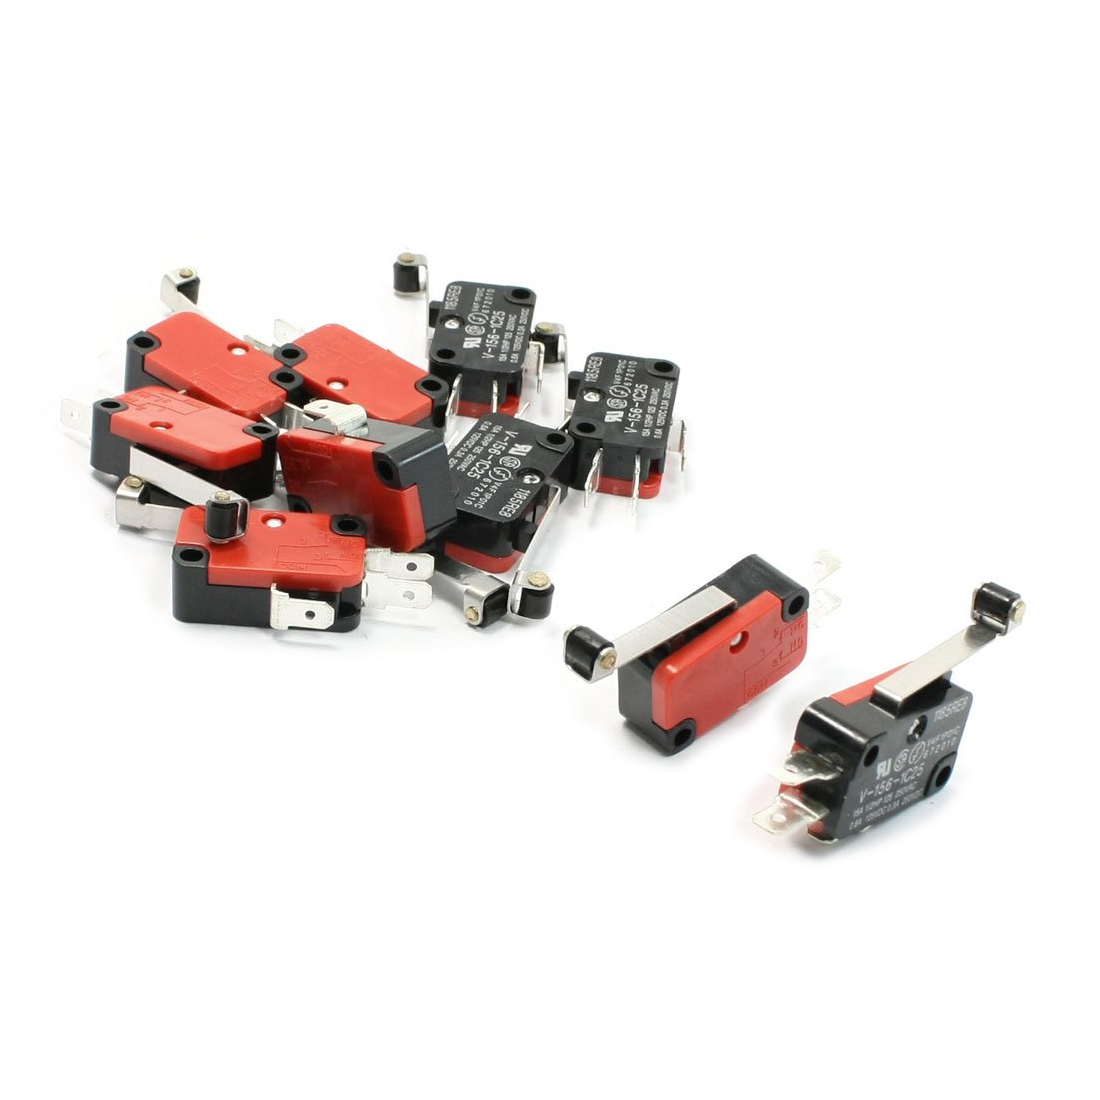 Promotion! 10 Pcs Micro Limit Switch Long Hinge Roller Lever Arm Snap Action LOT